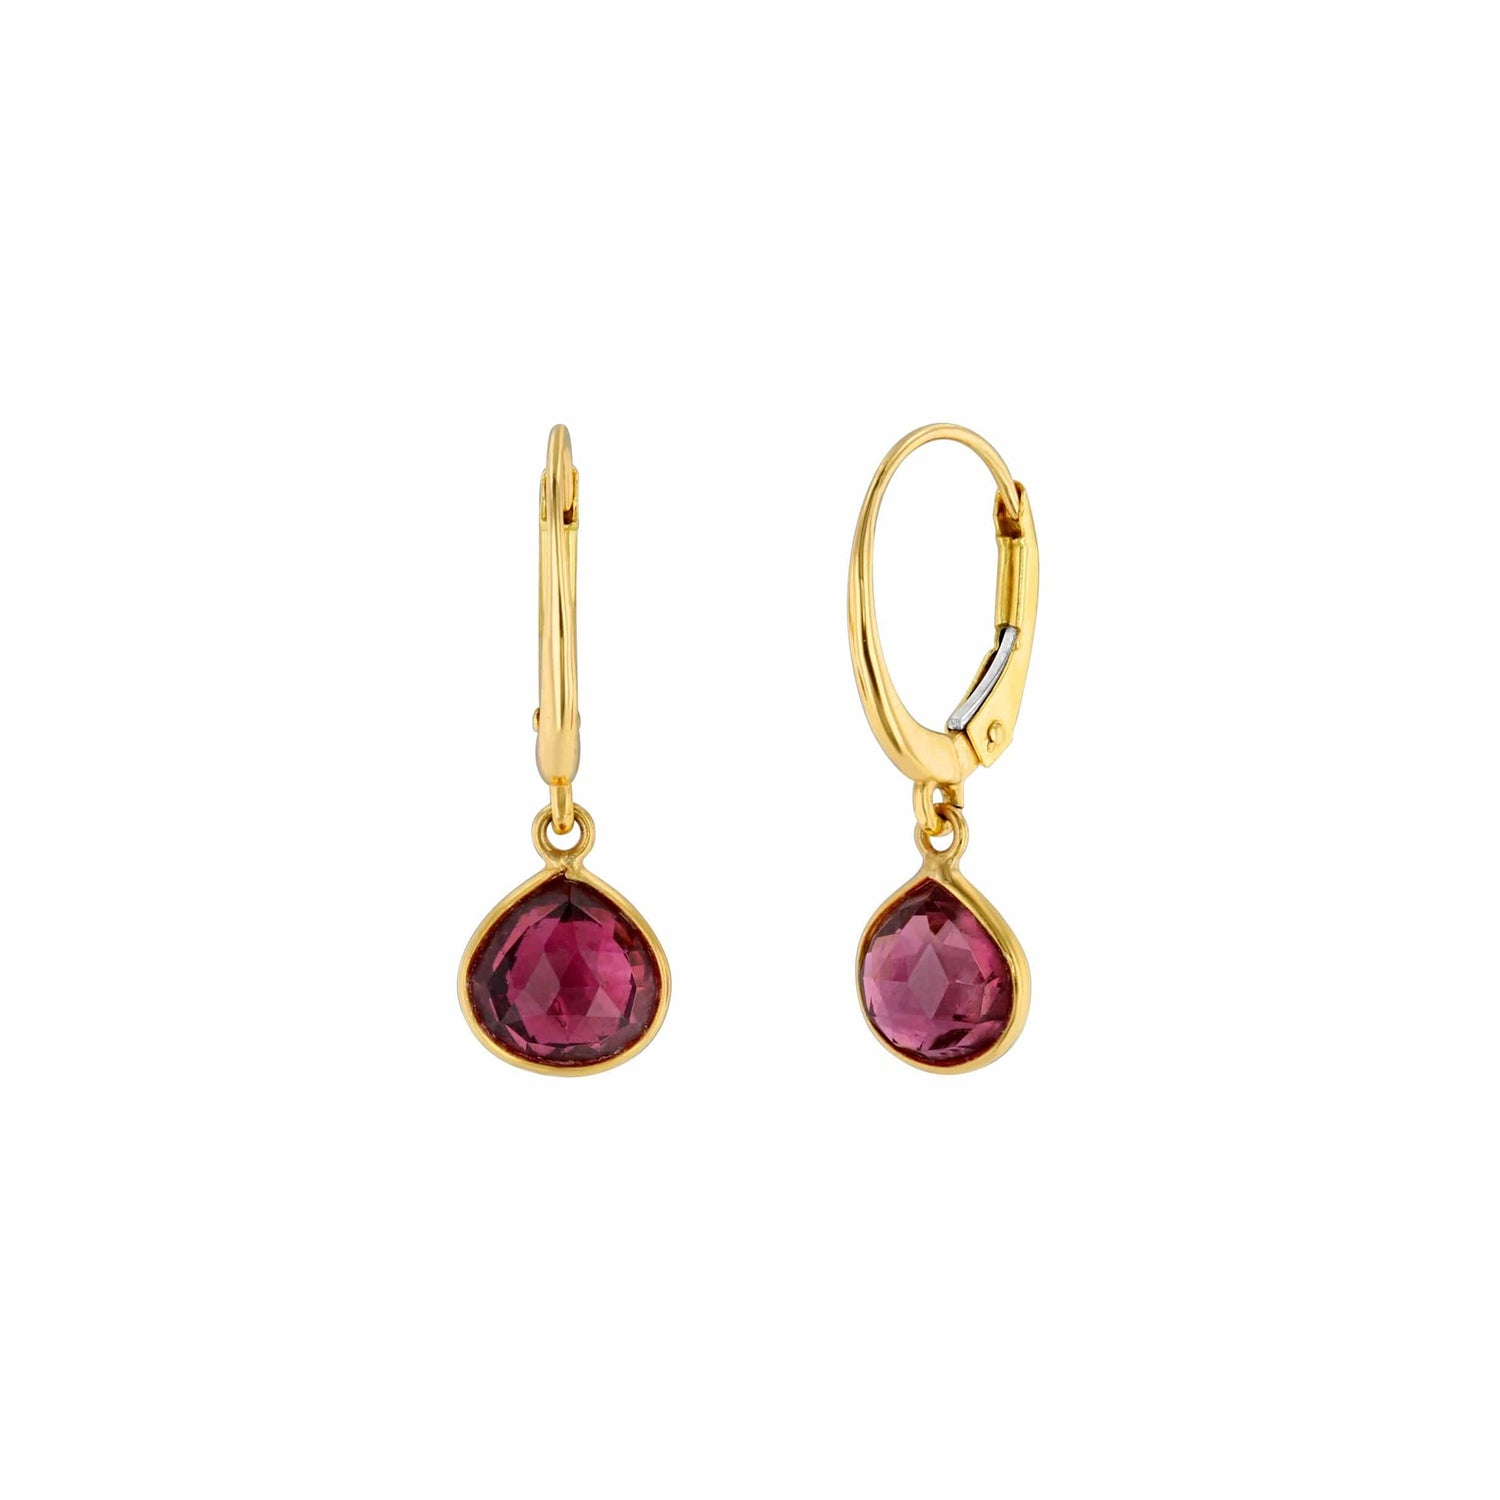 Yellow Gold Pink Tourmaline Earrings Elizabeth Jane Atelier